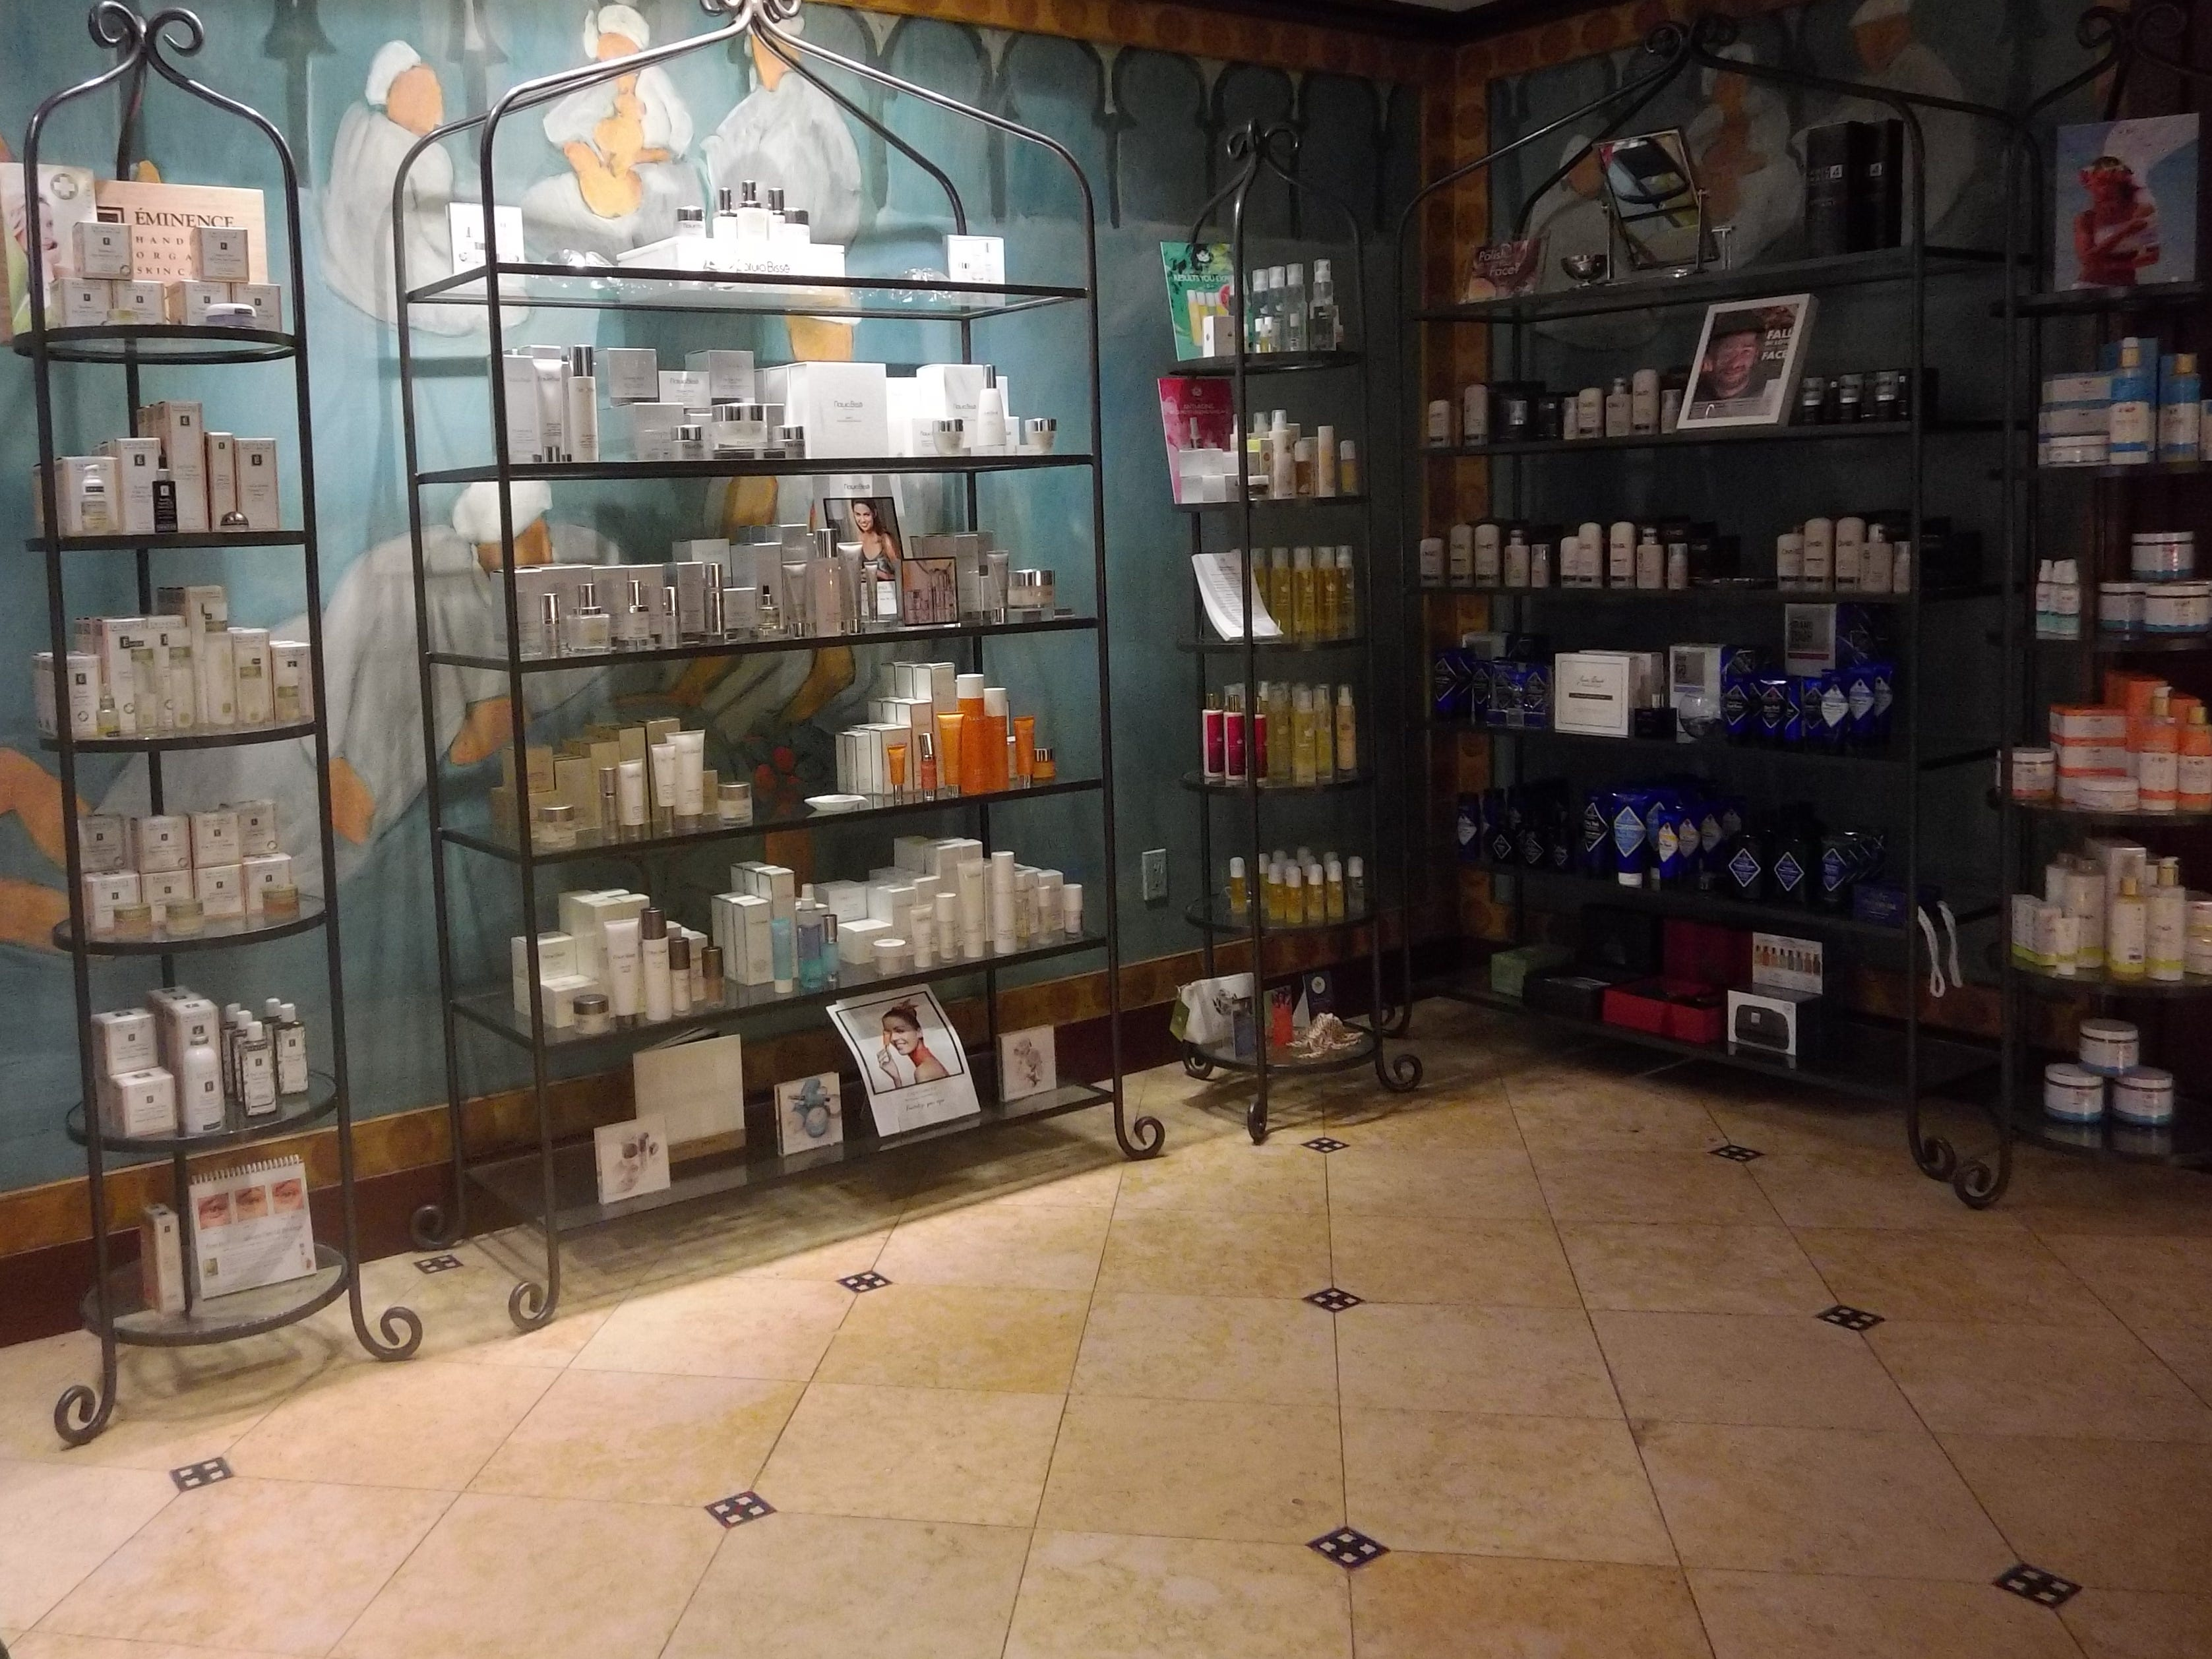 Scents for days at the Waldorf Astoria Spa Boutique at Boca Raton Resort & Club.